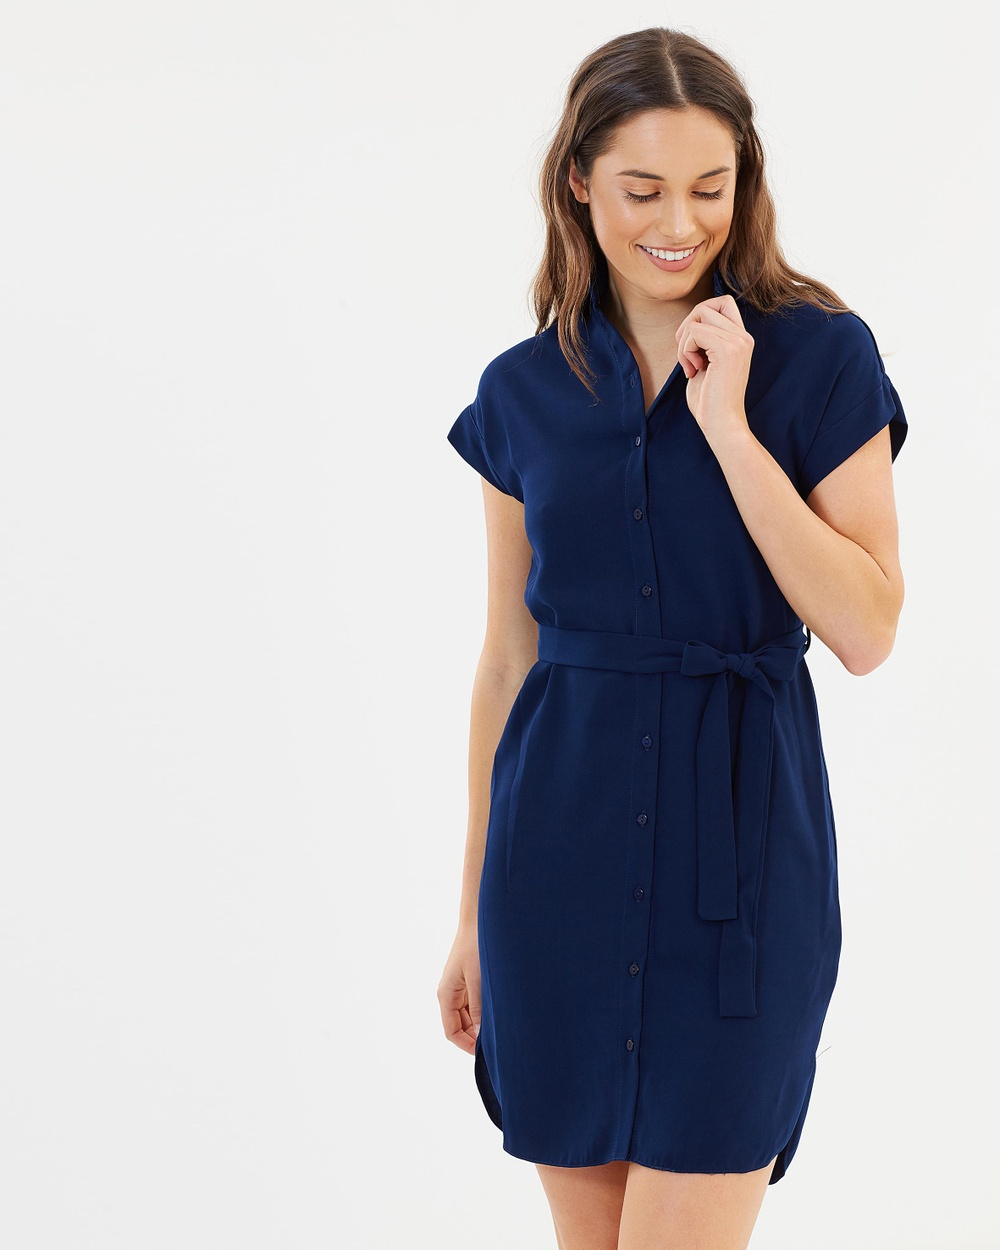 Dorothy Perkins Shirt Dress Dresses Navy Blue Shirt Dress